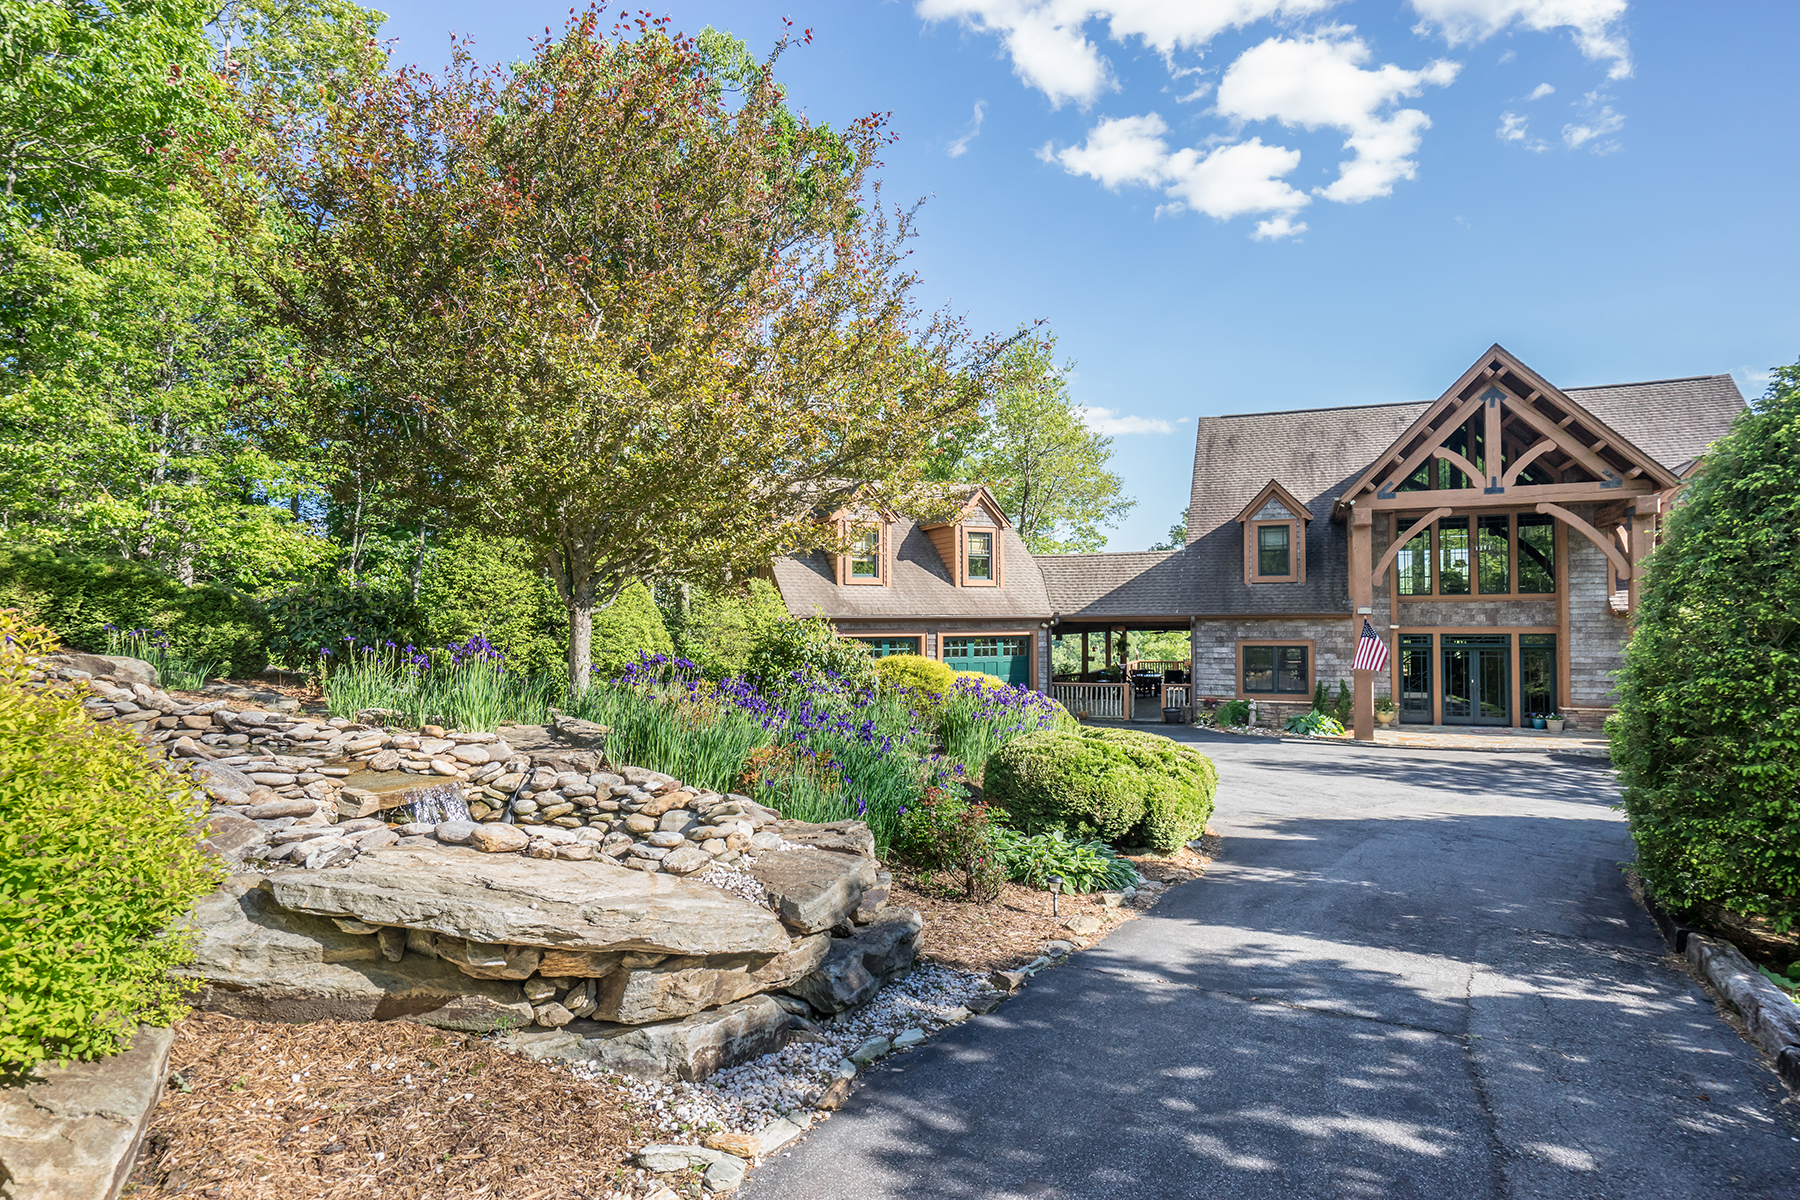 Single Family Homes for Sale at STONECLIFF PRESERVE - BOONE 236 & TBD Caspars Way Boone, North Carolina 28607 United States